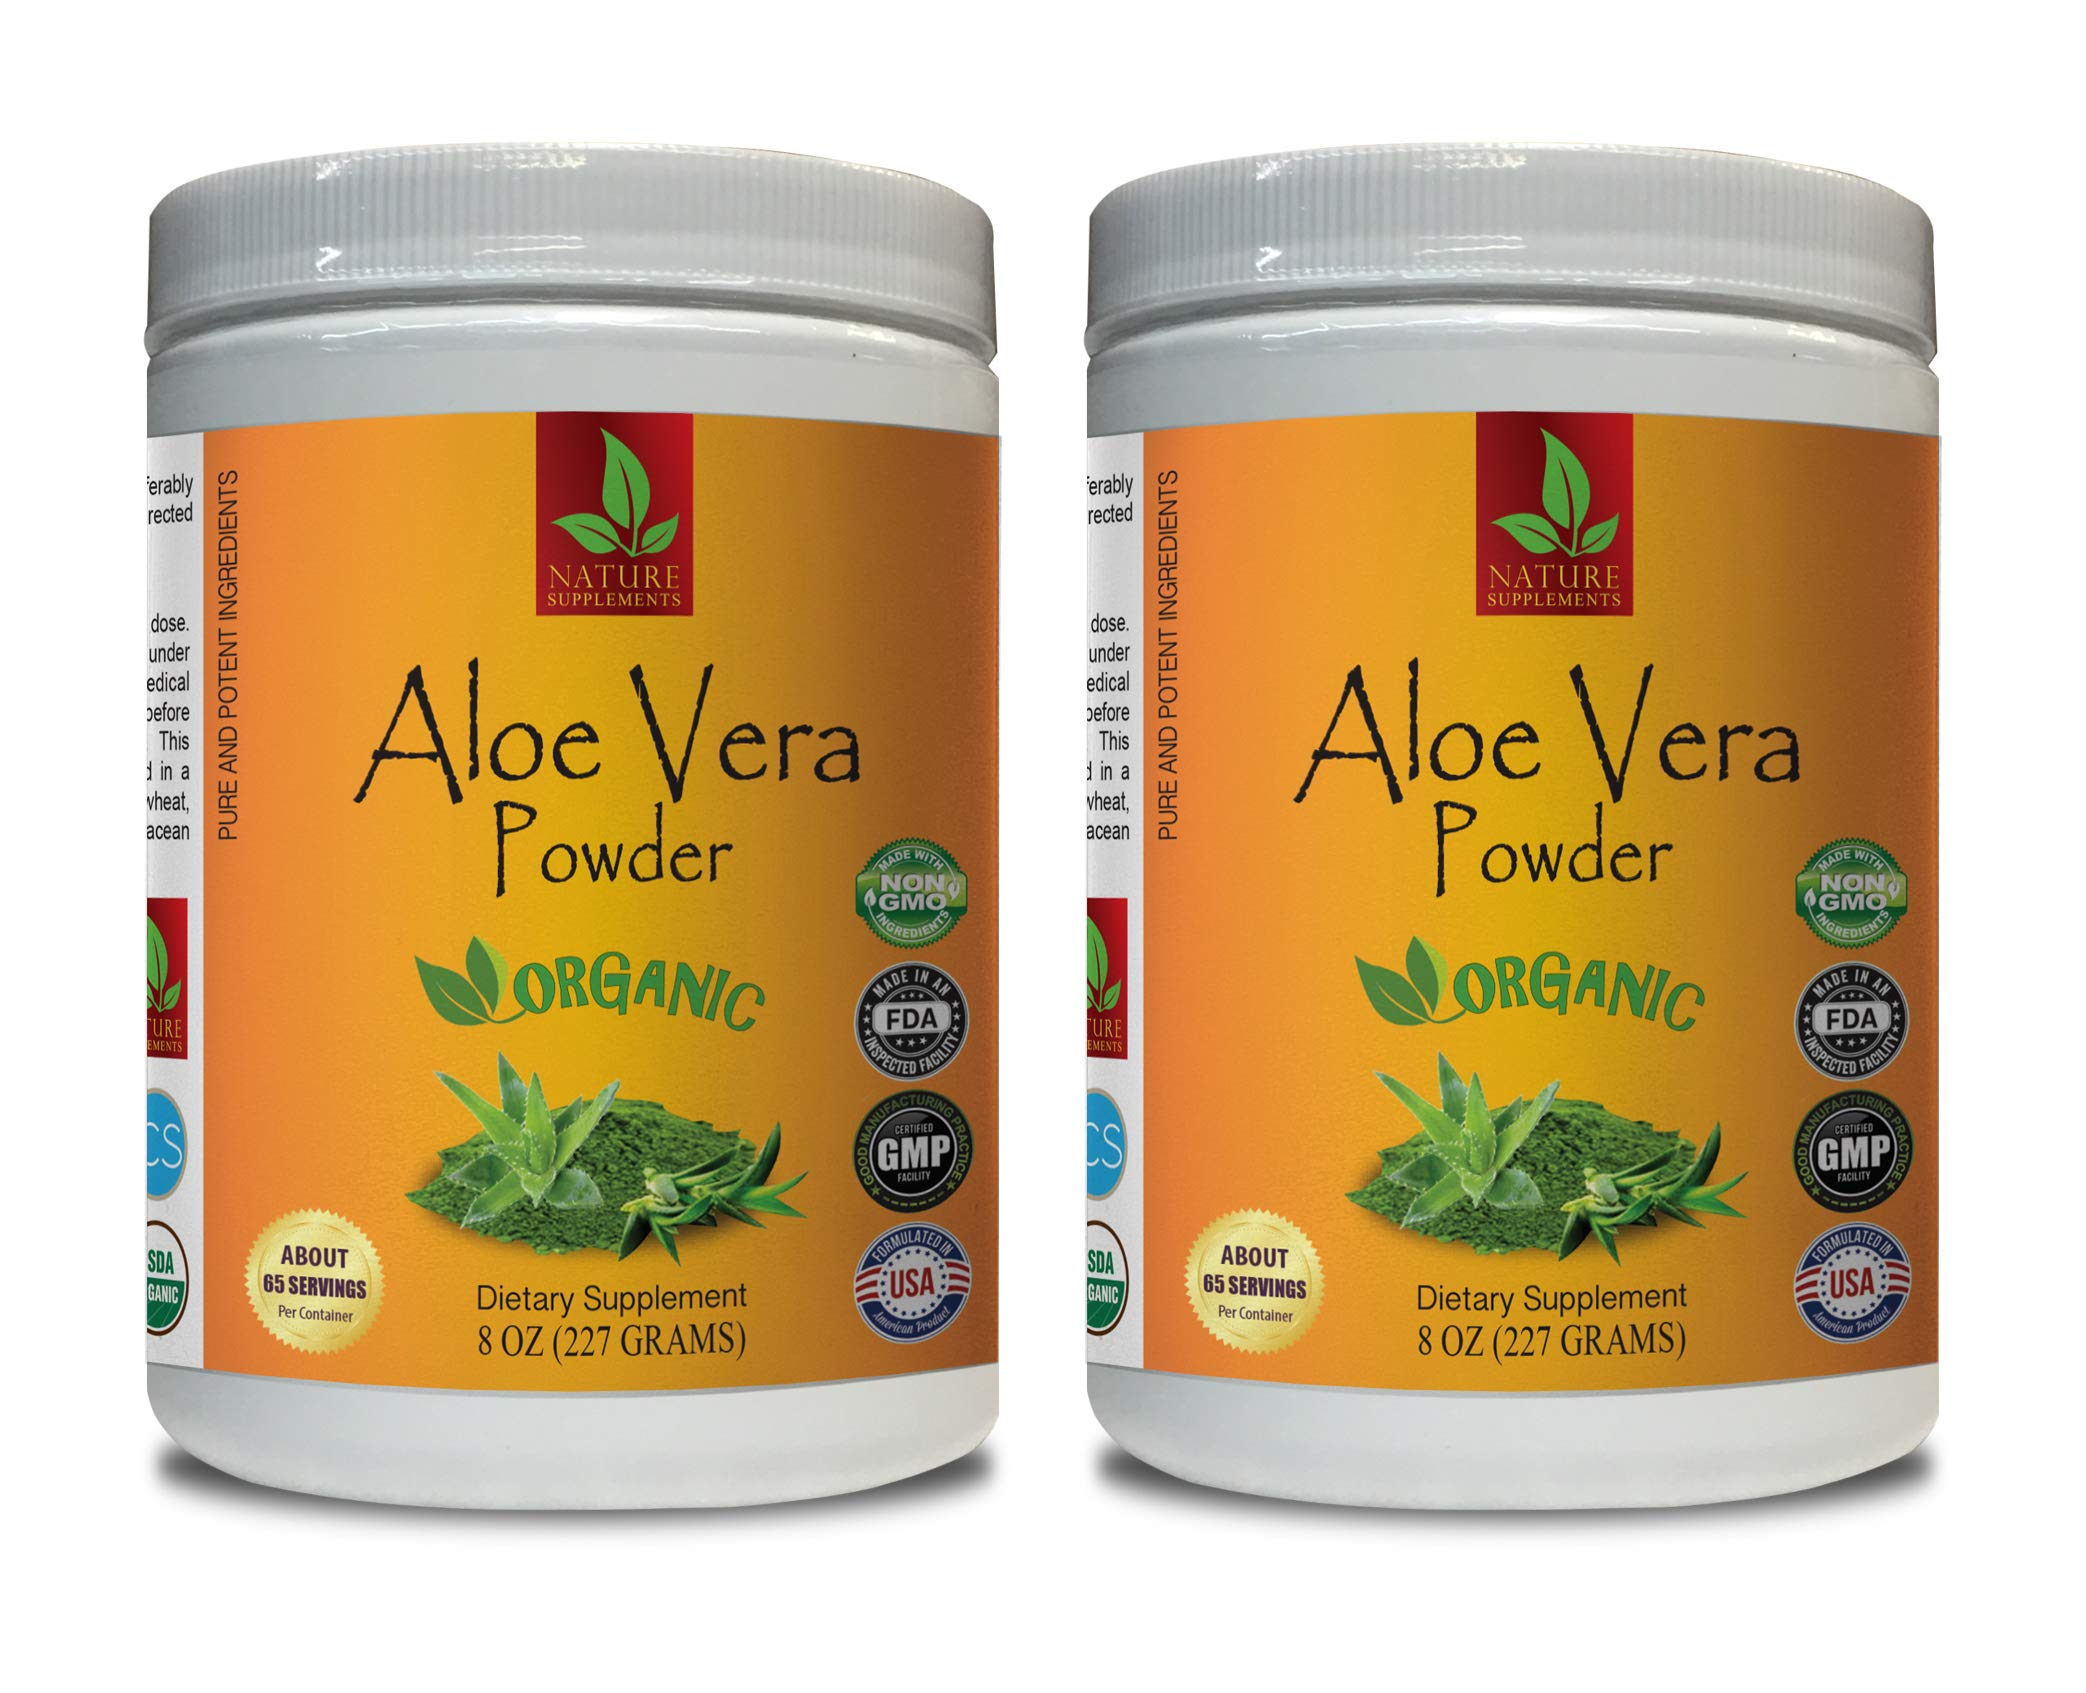 antioxidant Vitamins for Women - Aloe Vera Organic Powder - Pure and Potent Ingredients - Aloe Vera Powder for Hair - 2 Cans 16 OZ (130 Servings)